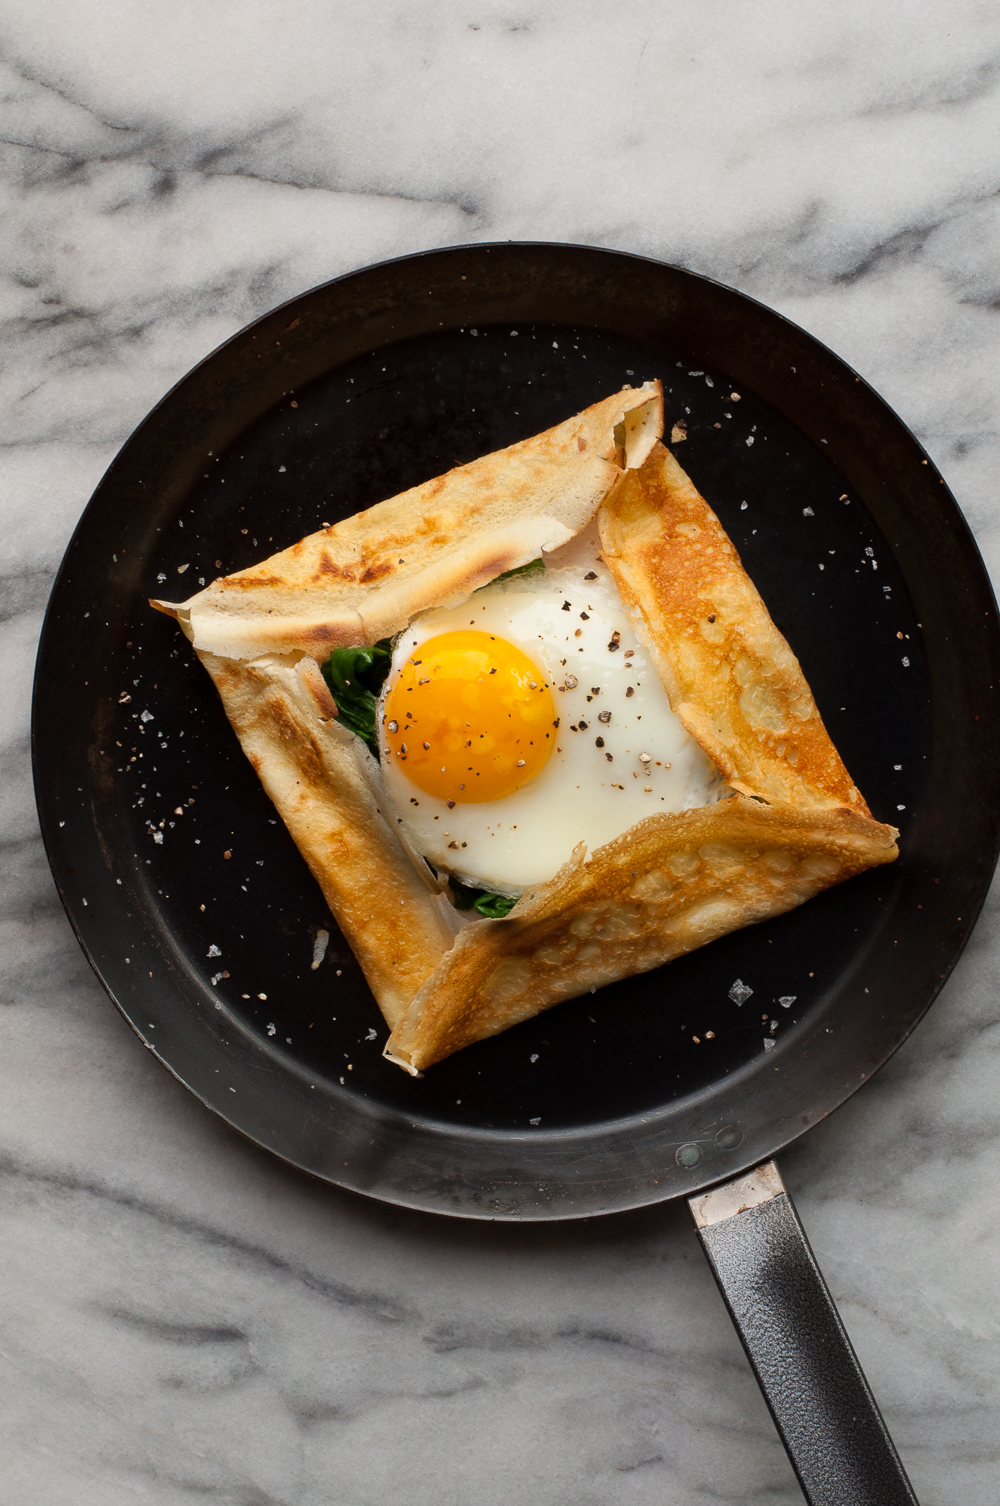 Savory Crepes With Cheese Spinach And A Fried Egg Amanda Frederickson